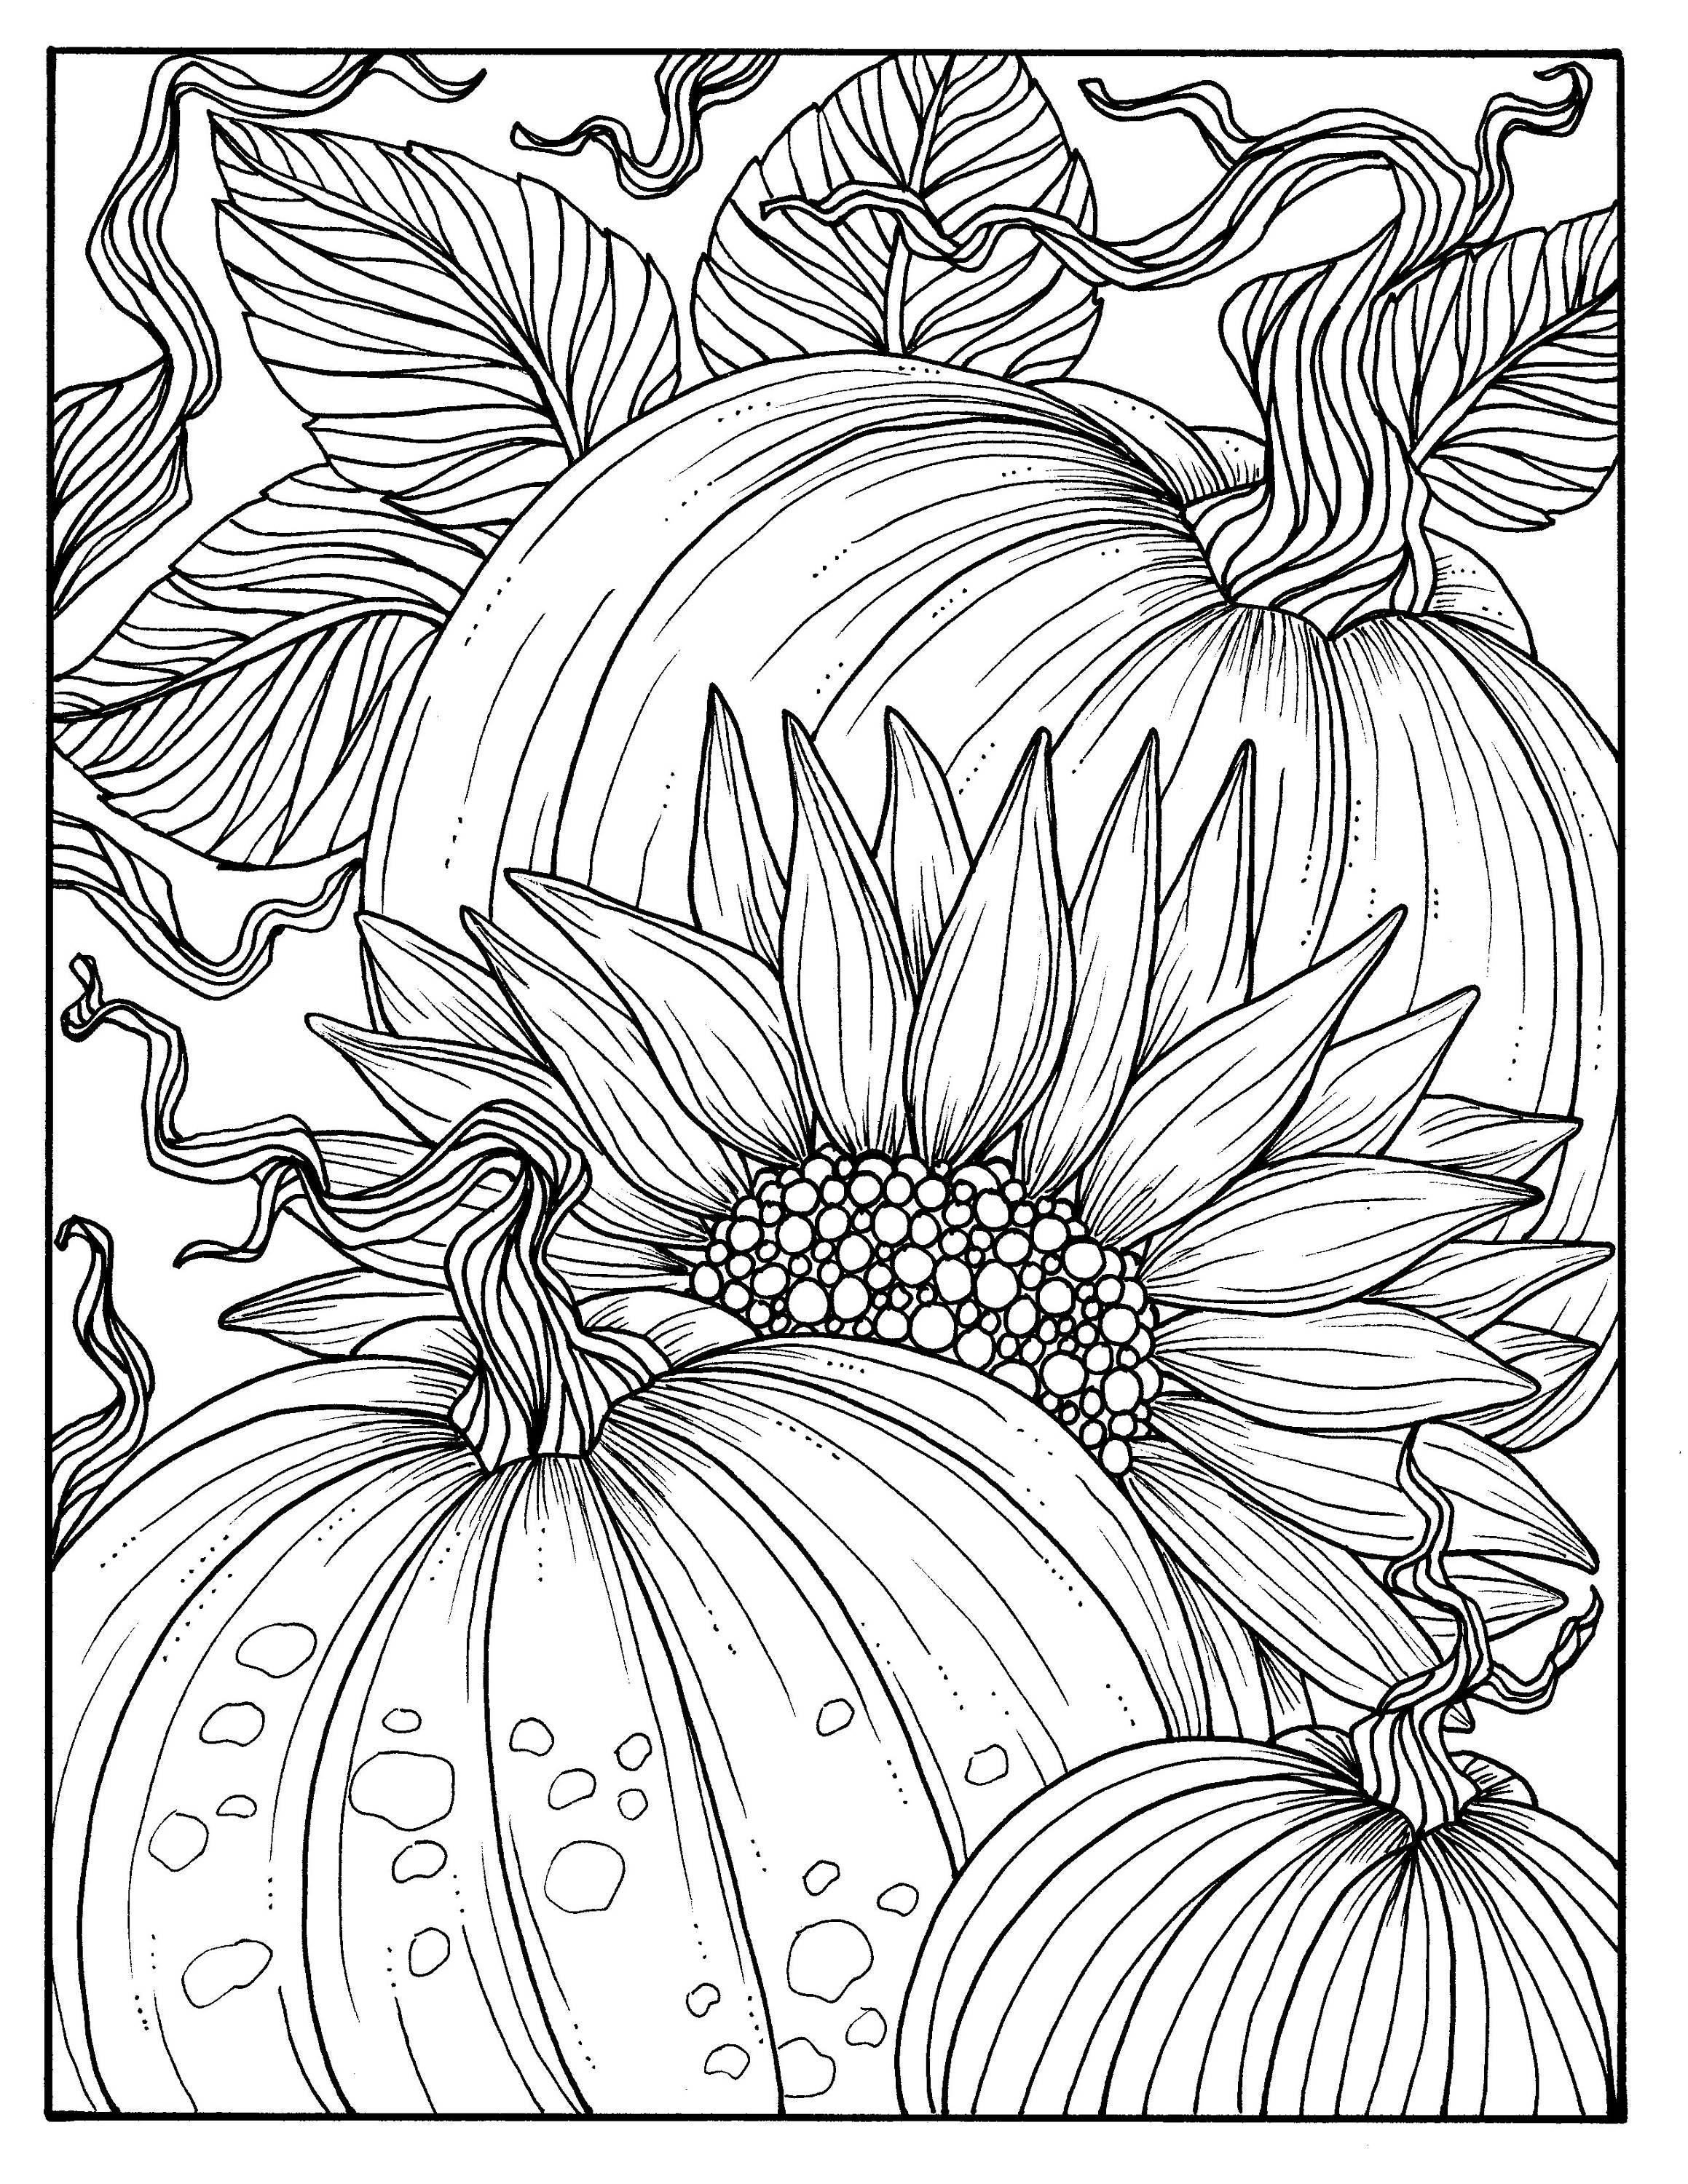 Coloring Pages For Adults Autumn : 5 Pages Fabulous Fall Digital Downloads to Color Punpkins